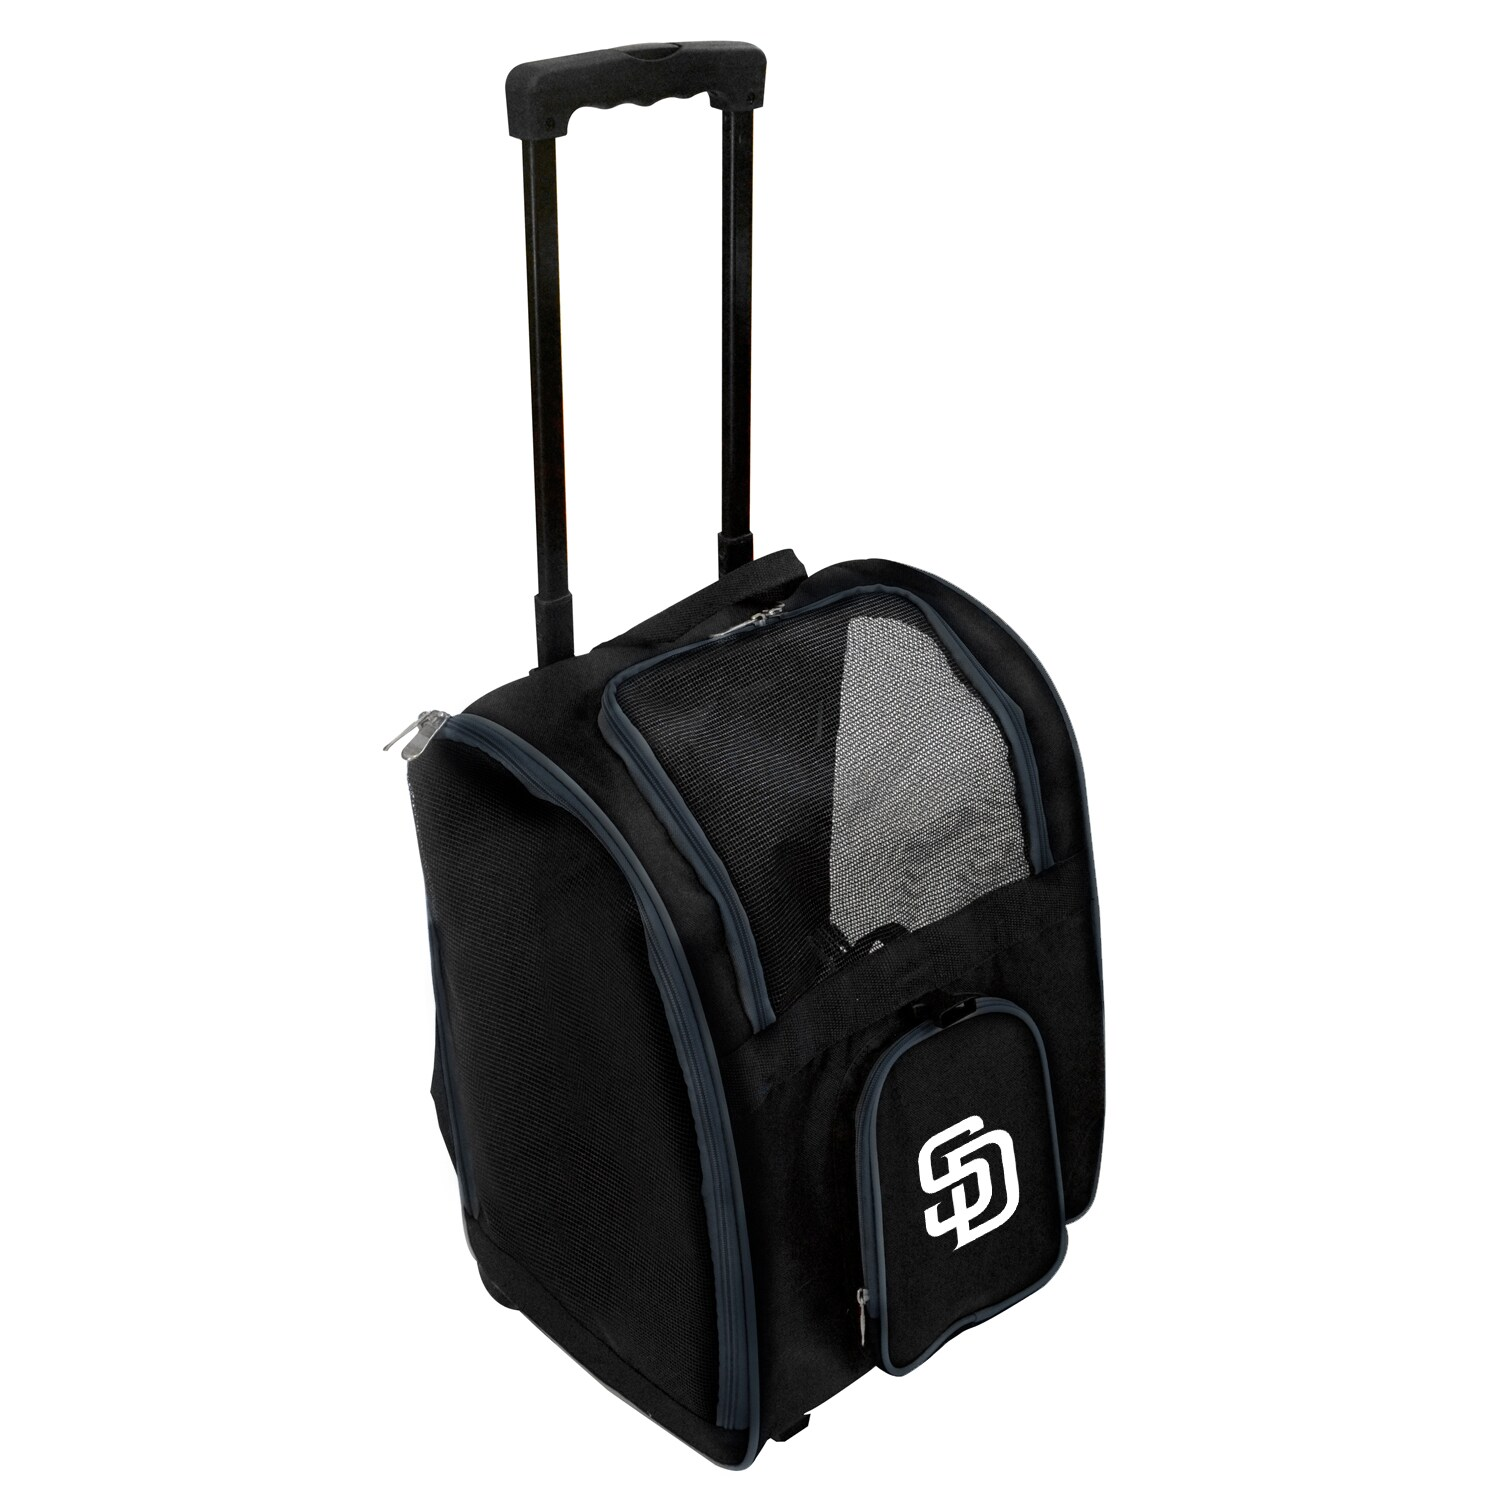 San Diego Padres 2-Wheeled Roller Pet Carrier - Black